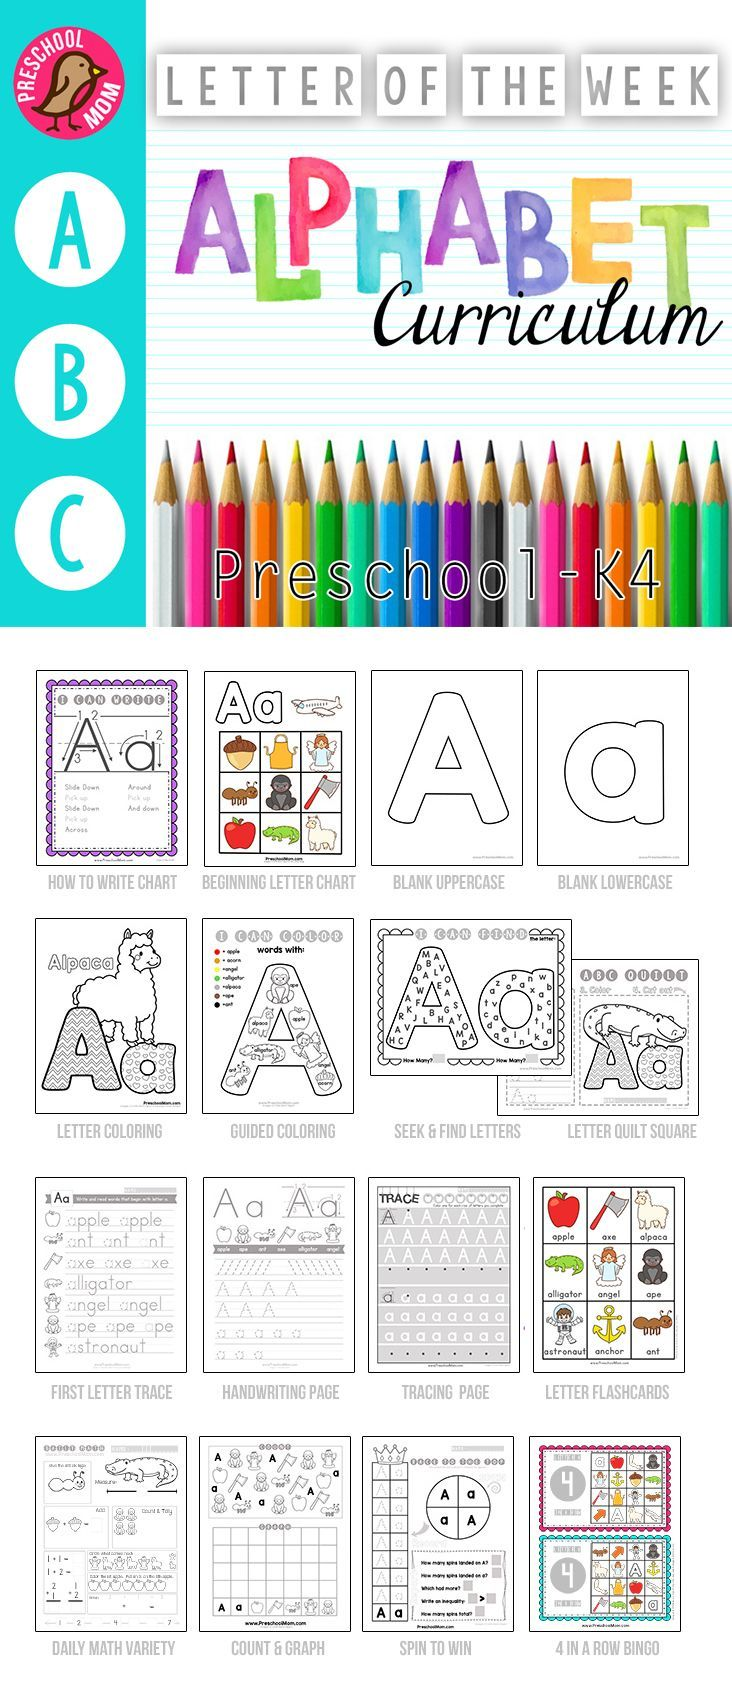 Pencil control worksheet for kids 187 tracing line worksheet for kids - Better For Year Olds Not Early Preschool Page Alphabet Curriculum No Prep Letter Of The Week Preschool And Alphabet Binder Worksheets Games Math And